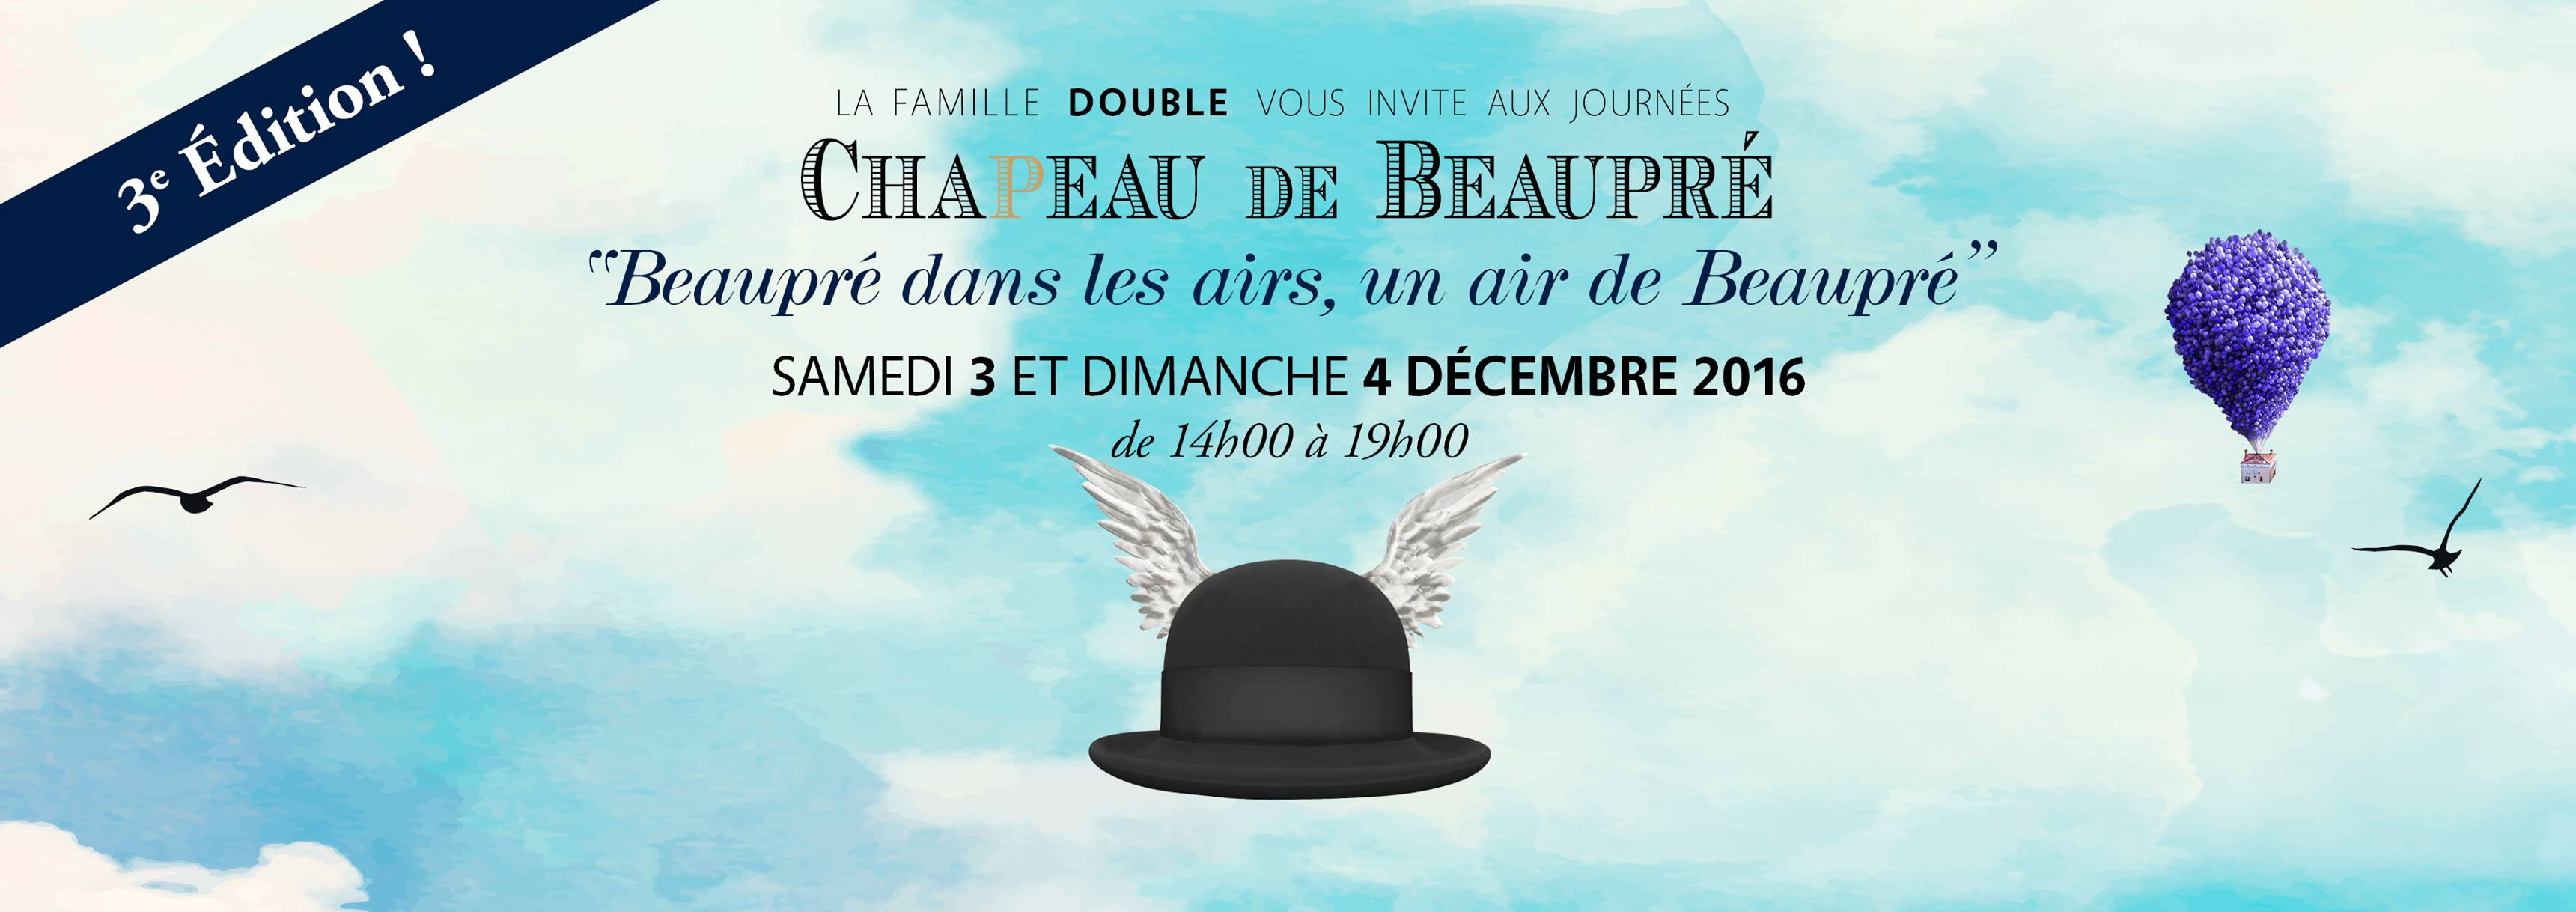 journee-chapeau-beaupre-famille-animation-week-end